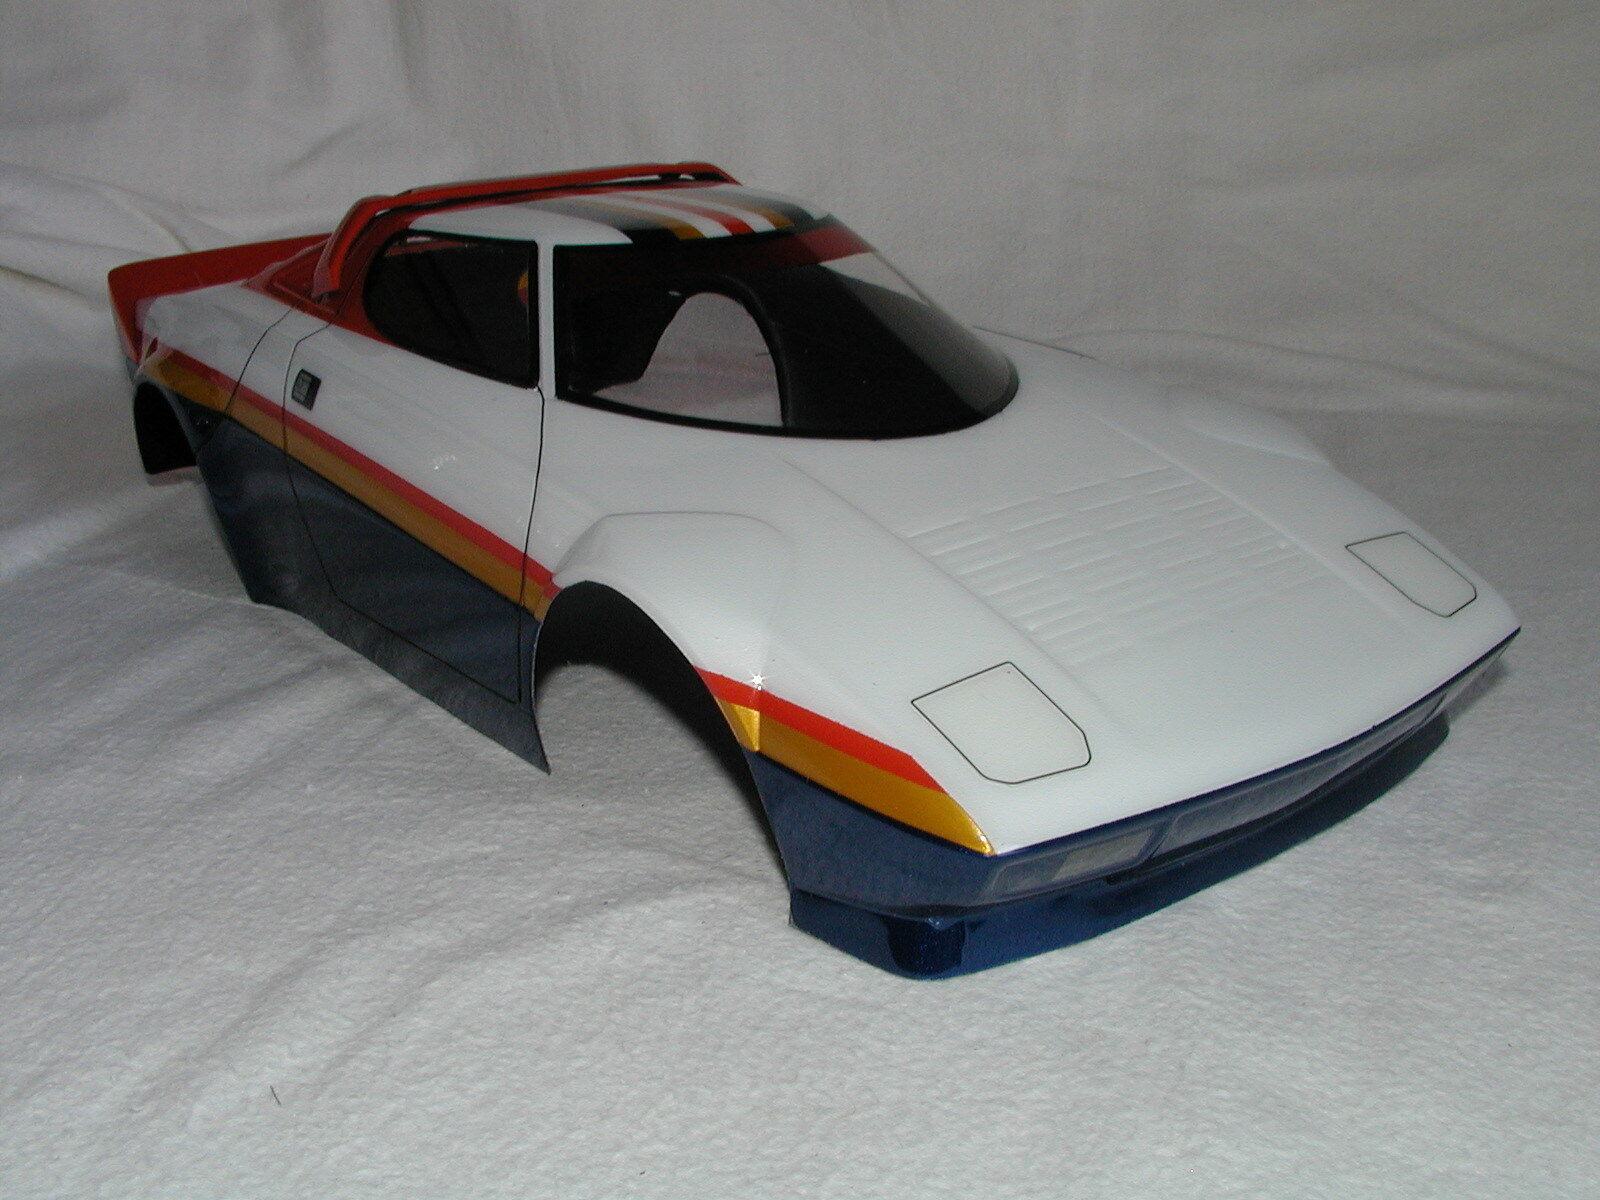 HPI 1/10 RC Body shell Karosserie M-Chassis - Lancia Stratos - Pro painted - New